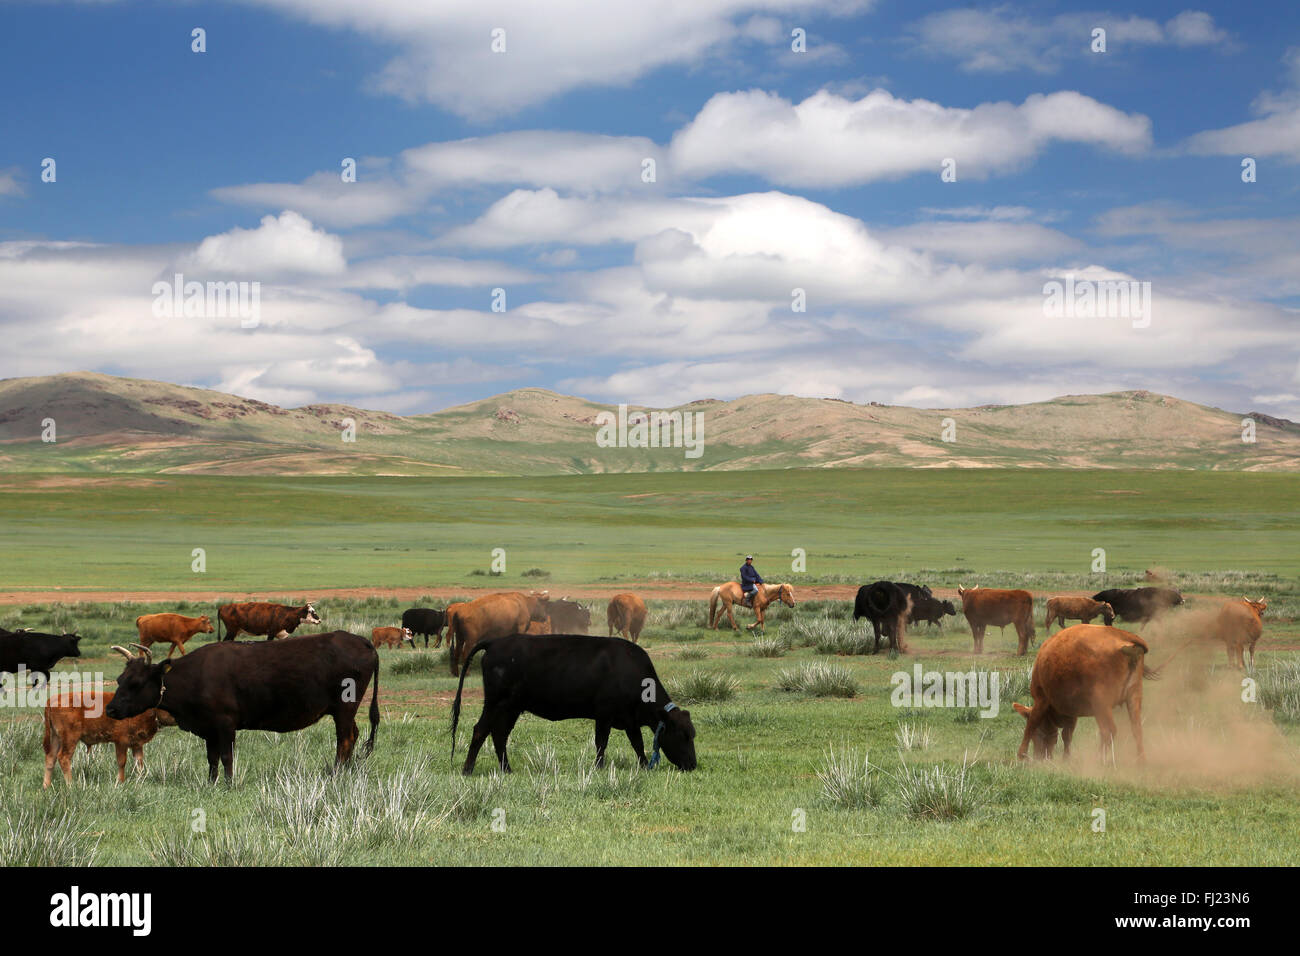 Mongolia green landscape with horses and cows - Stock Image